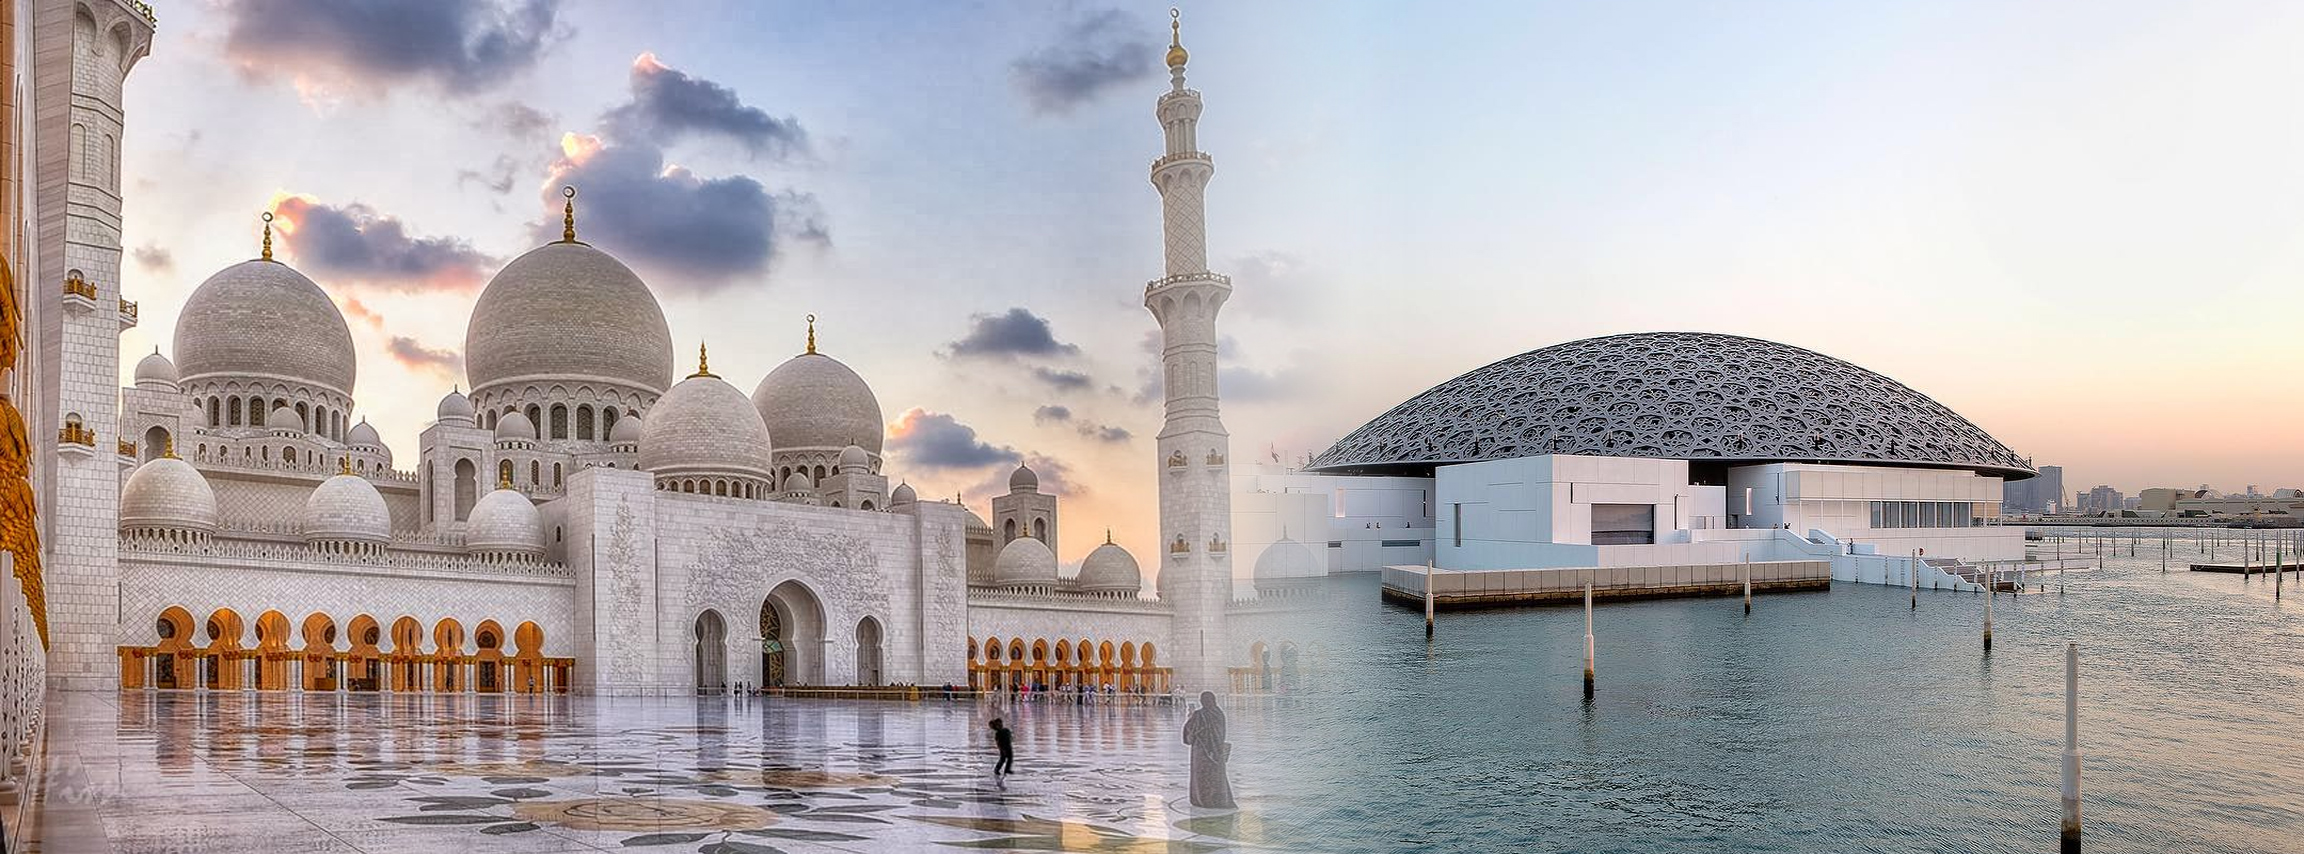 Abu Dhabi Zayed Grand Mosque + Louvre Museum